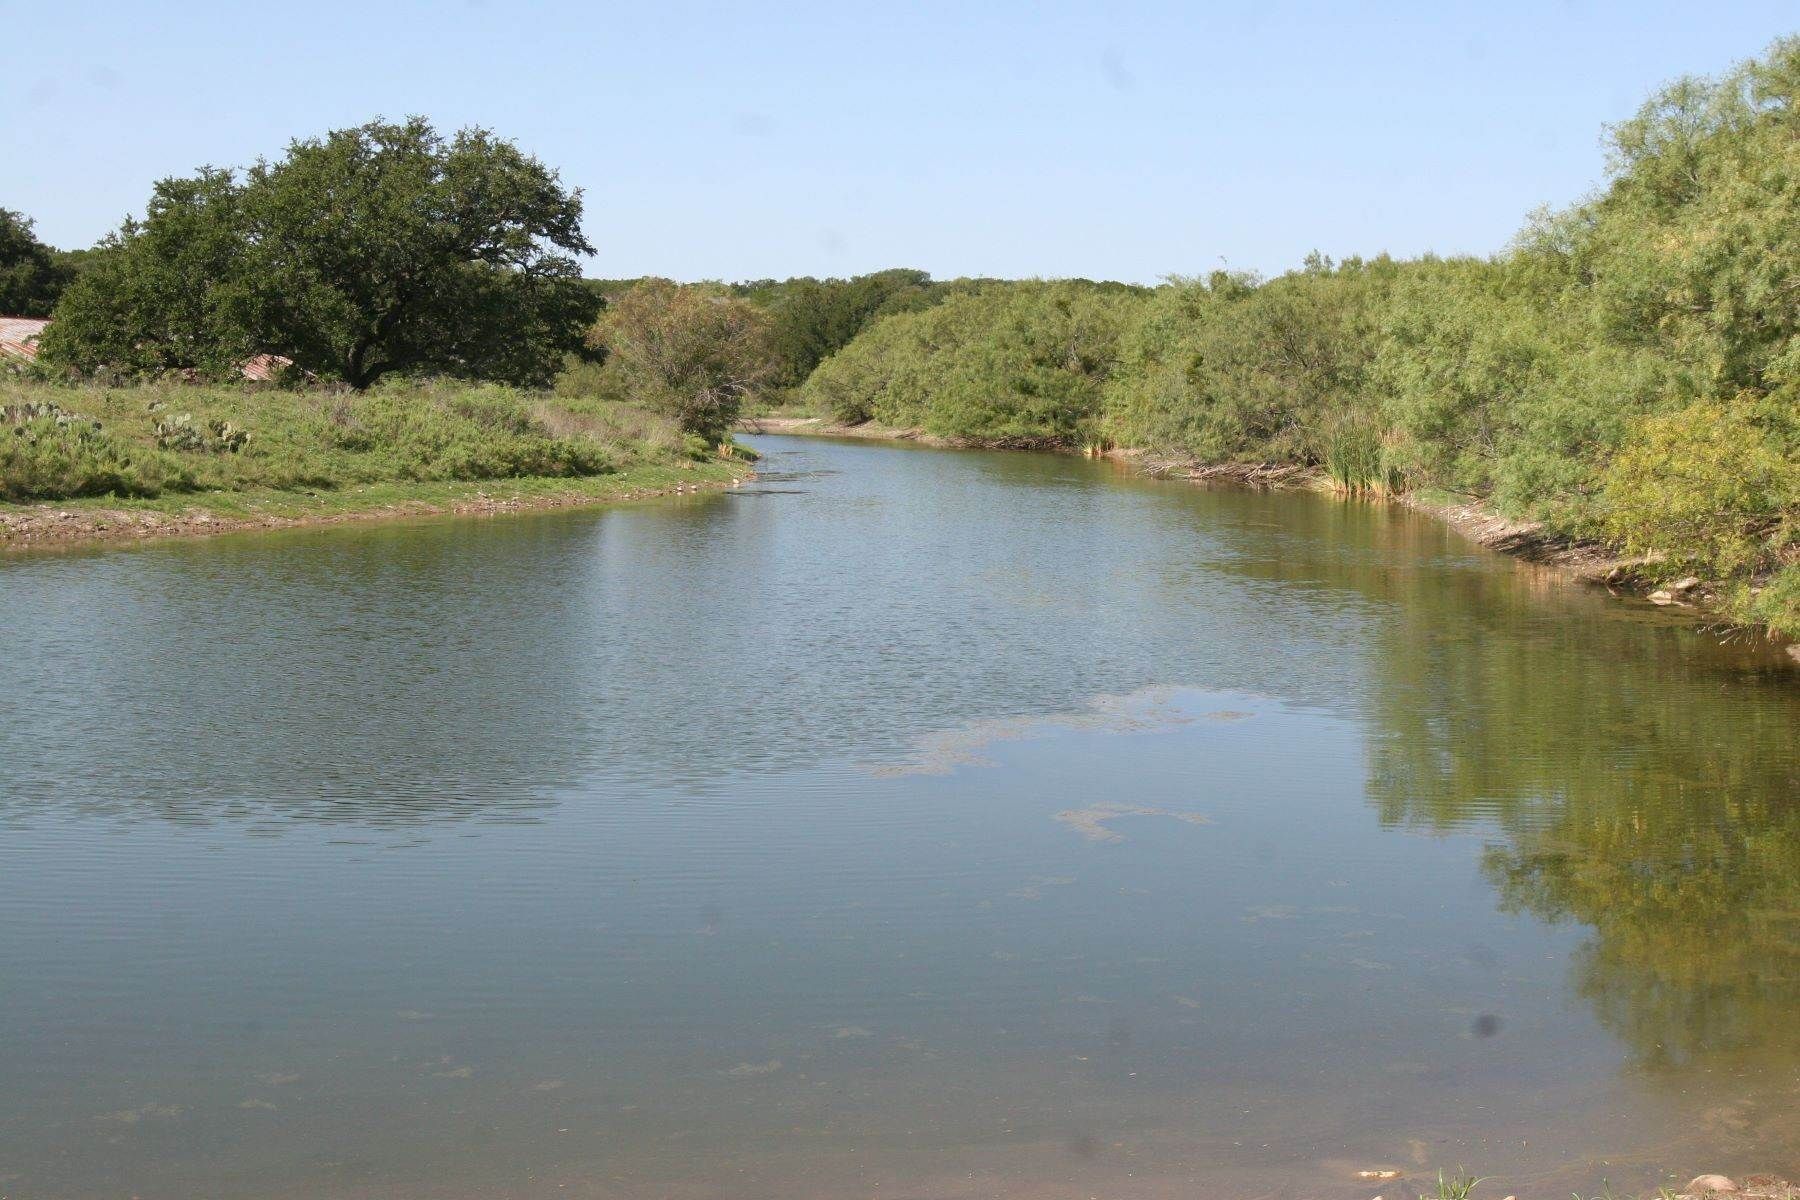 Farm and Ranch Properties for Sale at 3,500 ACRES TREATY STONE RANCH 3,500+/- Acres - San Saba County - Treaty Stone Ranch, San Saba, Texas, 76877 United States